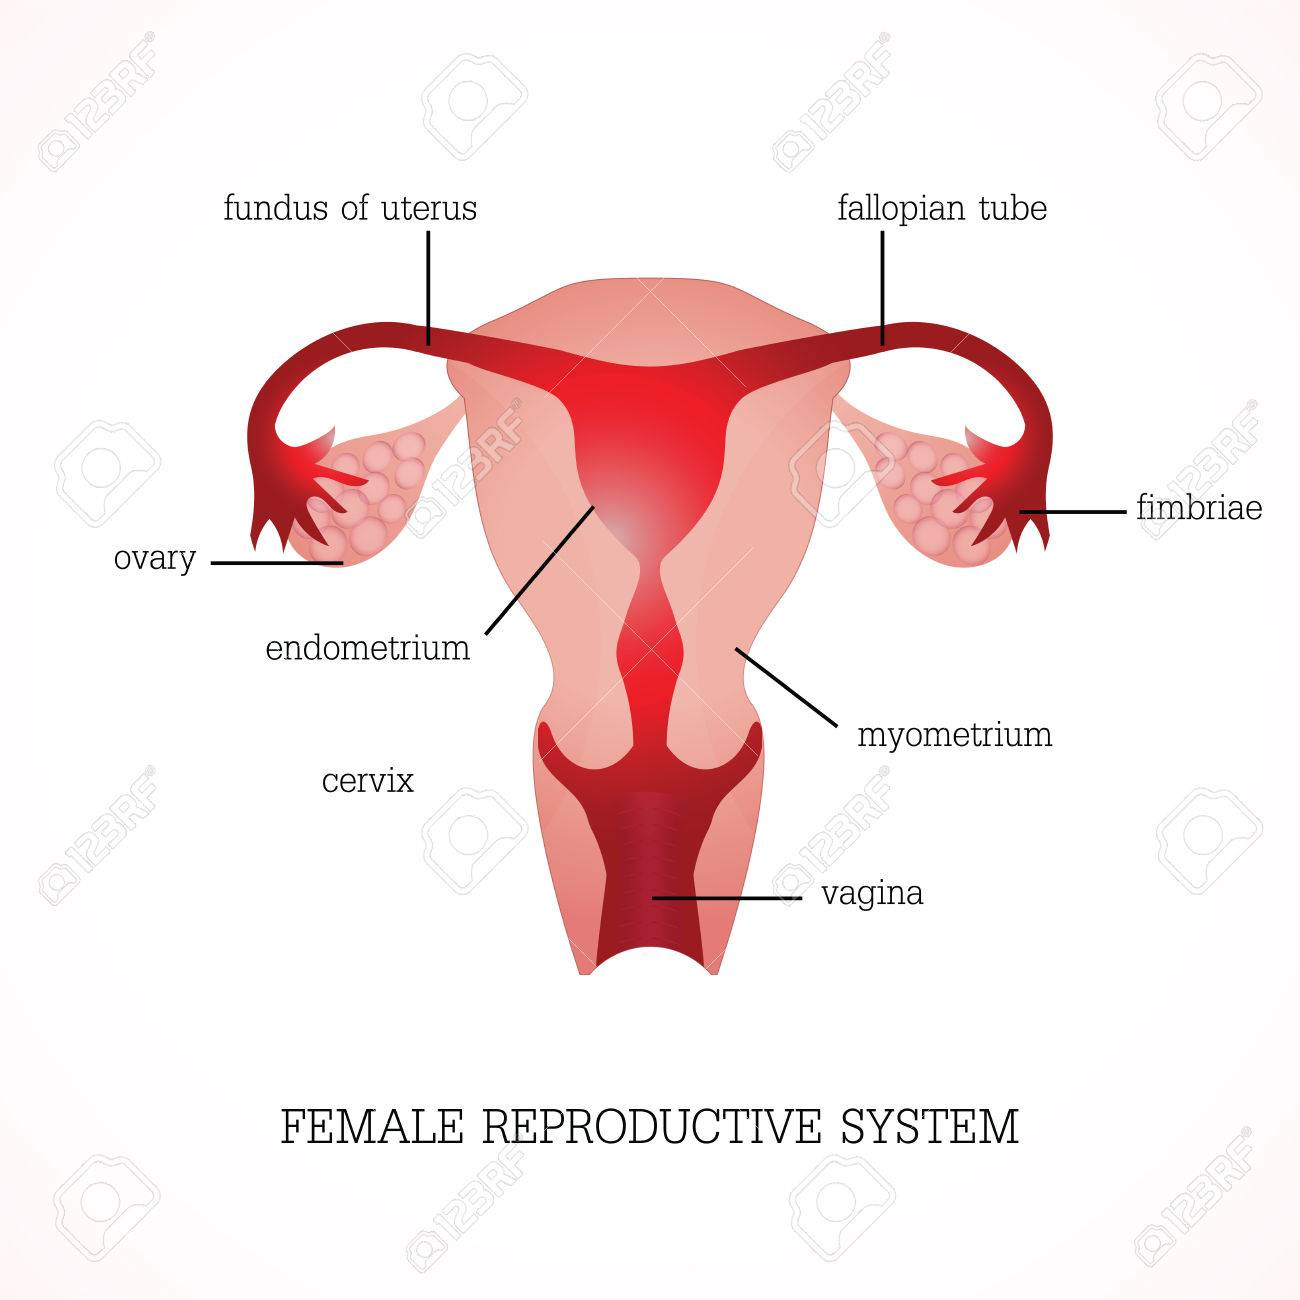 hight resolution of structure and function of human female reproductive anatomy system isolated on background human anatomy education